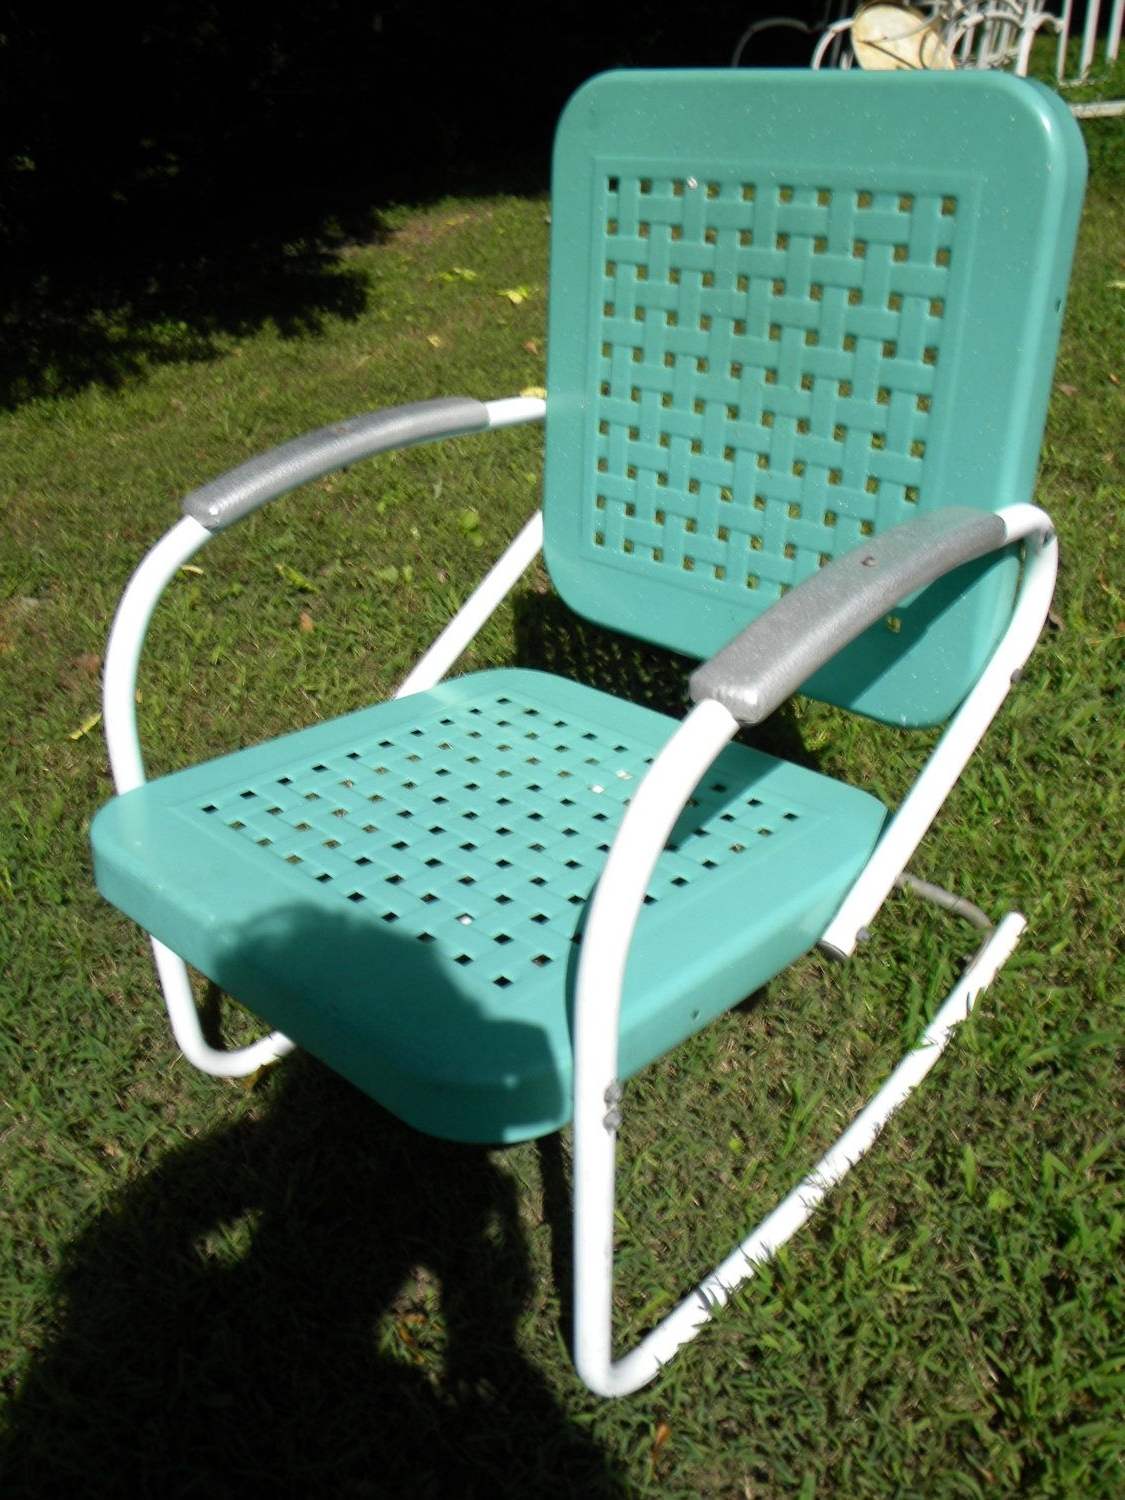 Most Recently Released Vtg 50s 60s Retro Outdoor Metal Lawn Patio Porch Rocking Chair Regarding Patio Metal Rocking Chairs (View 17 of 20)